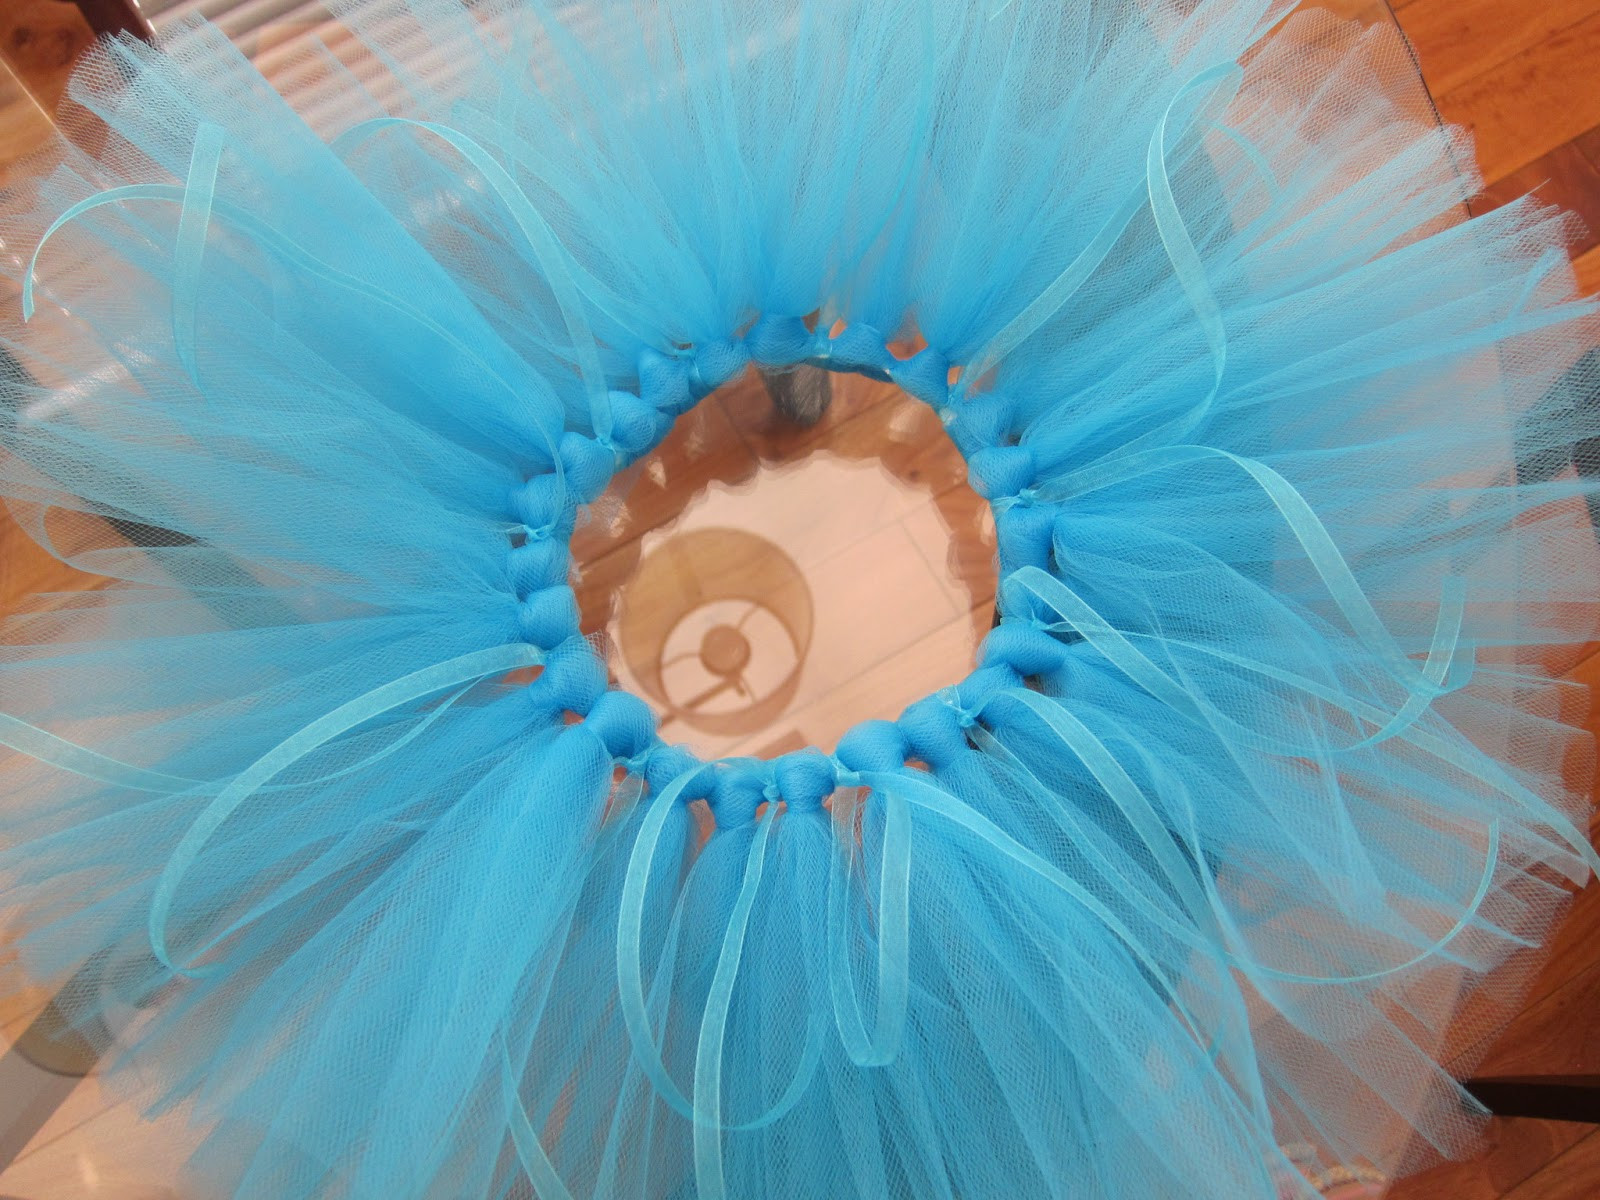 Best ideas about DIY Baby Tutu . Save or Pin BEAUTIFUL CANVAS DIY Baby Tutu Now.